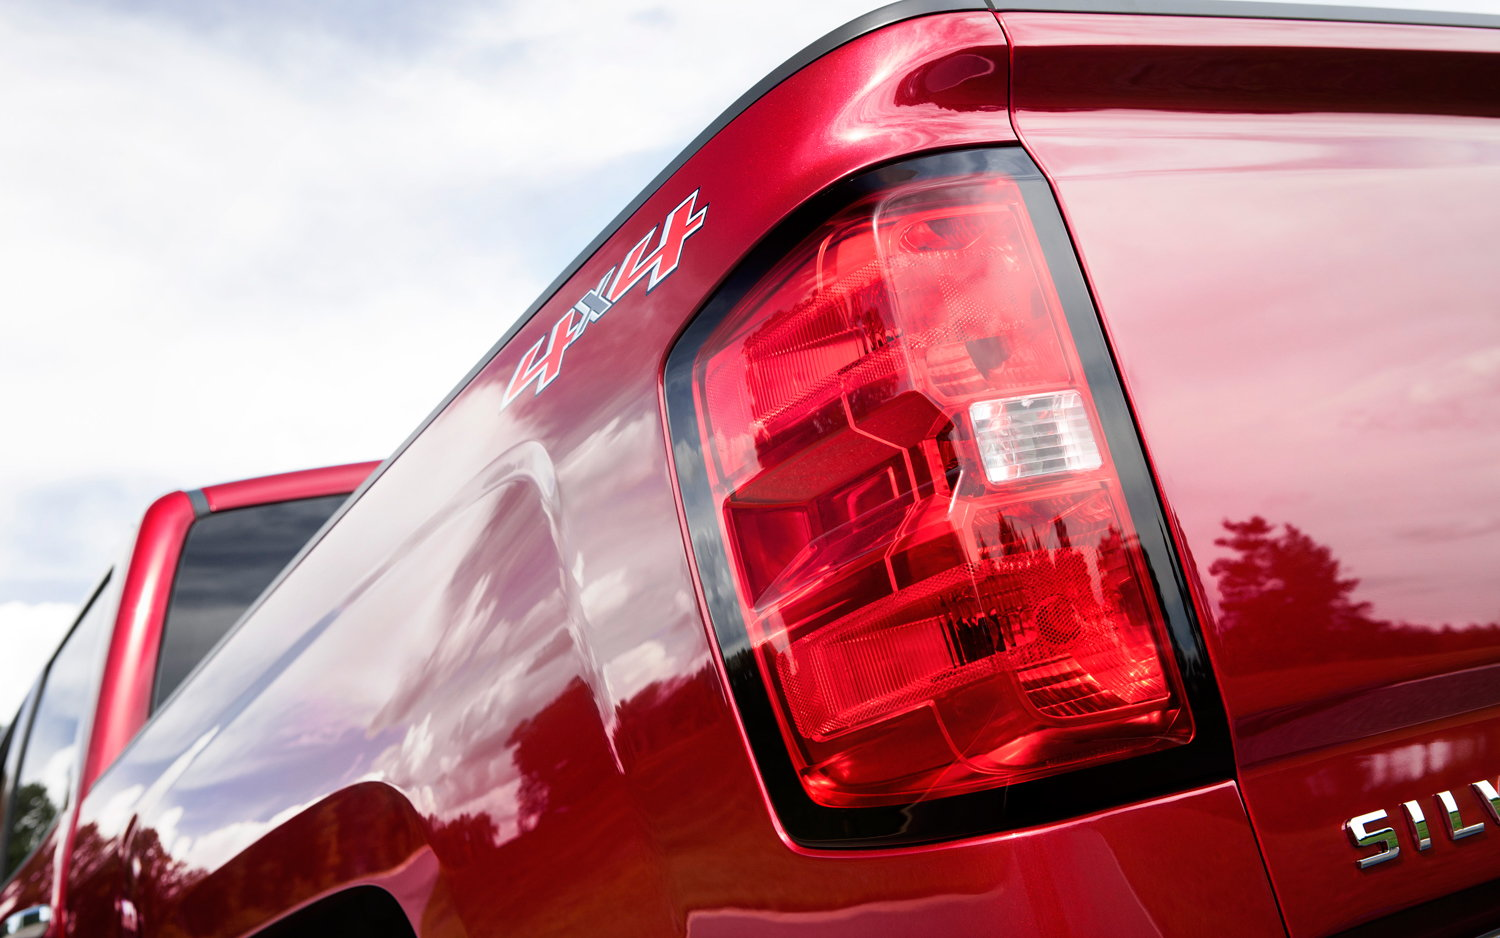 2014 chevrolet silverado ltz rear tail light 69208 chevrolet silverado 1500 k2xx 2014 present how to replace tail  at edmiracle.co